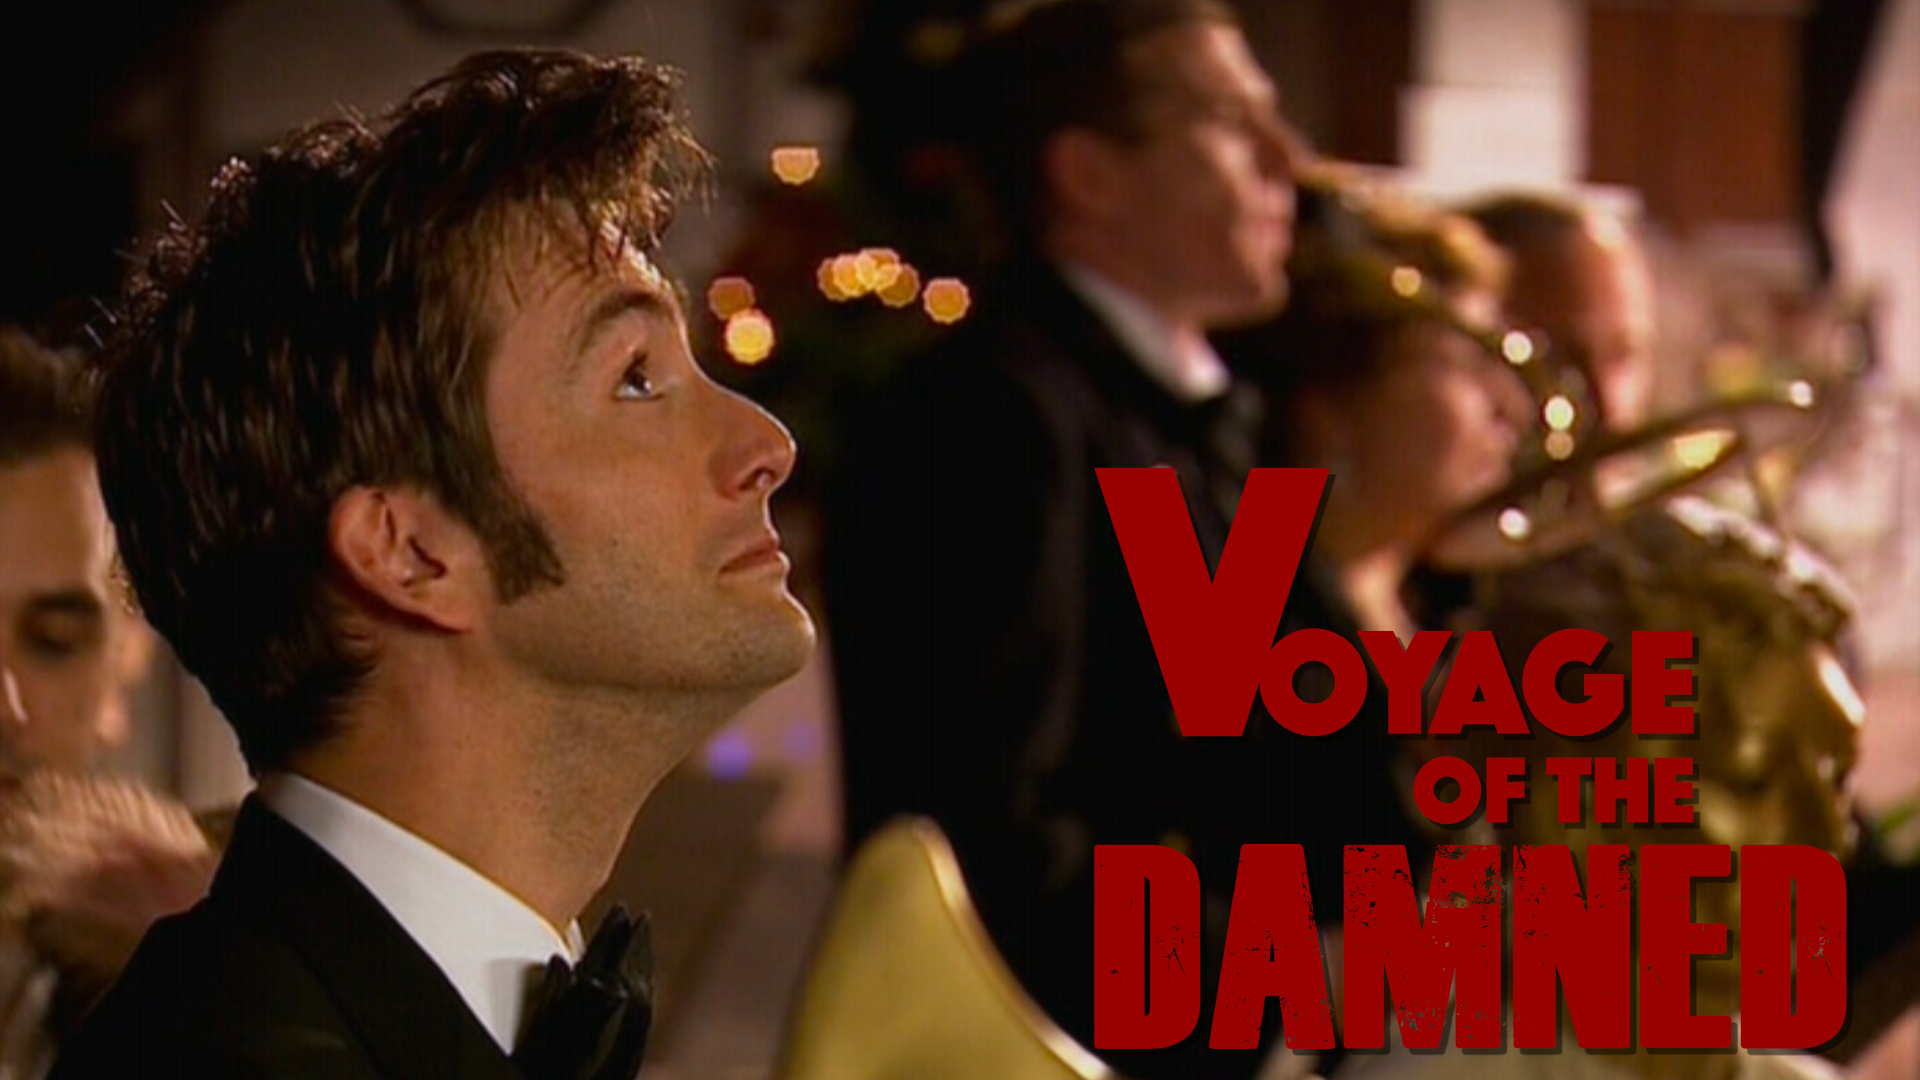 Doctor Who Voyage of the Damned Recap | Discussing Who: A